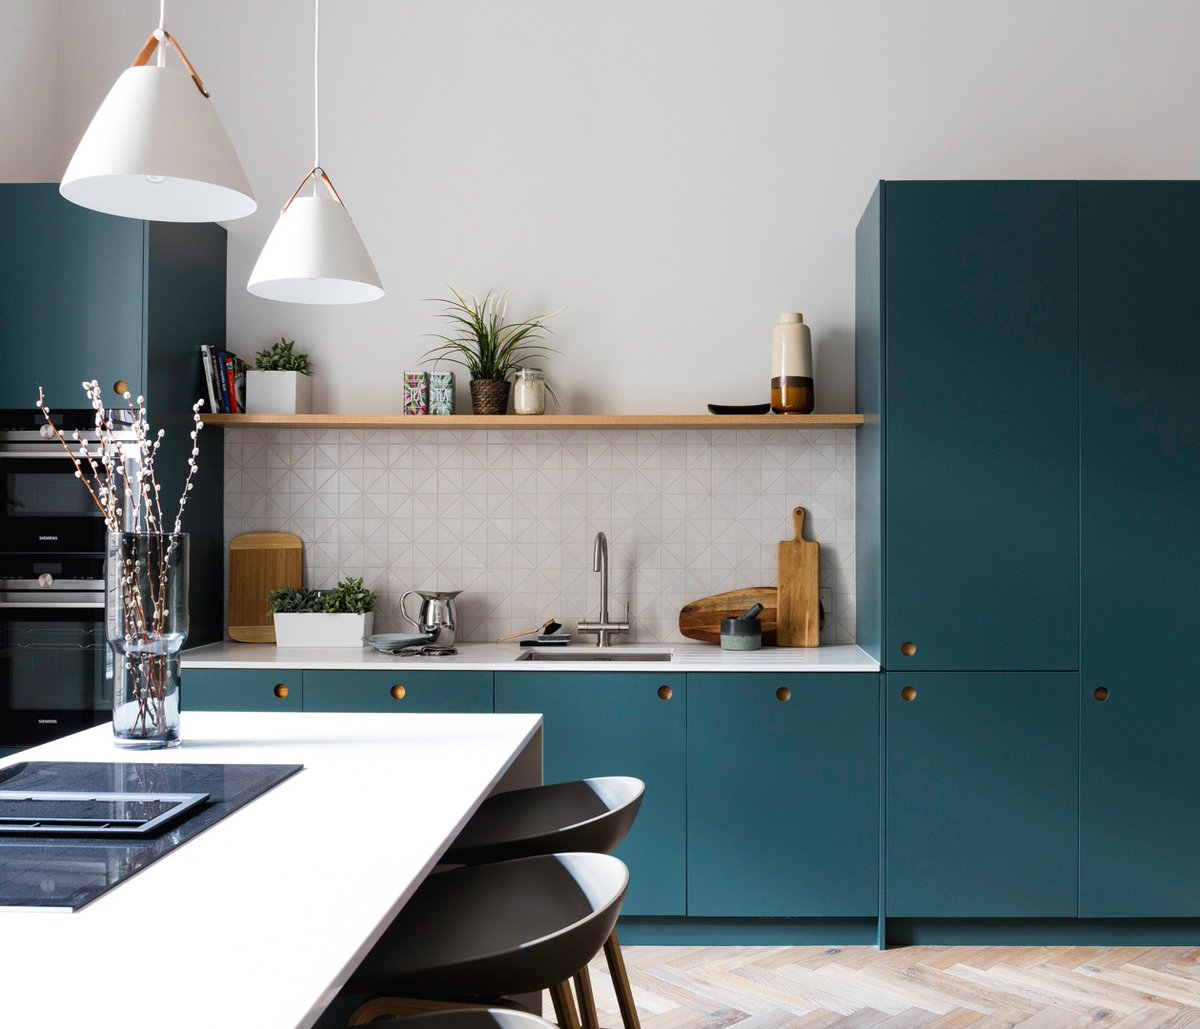 Naked Kitchens On Twitter Open Shelving Is A Wonderful Alternative To Wall Cabinets It Can Be A Great Way To Break Up Darker Coloured Cabinetry To Keep A Room Feeling Open